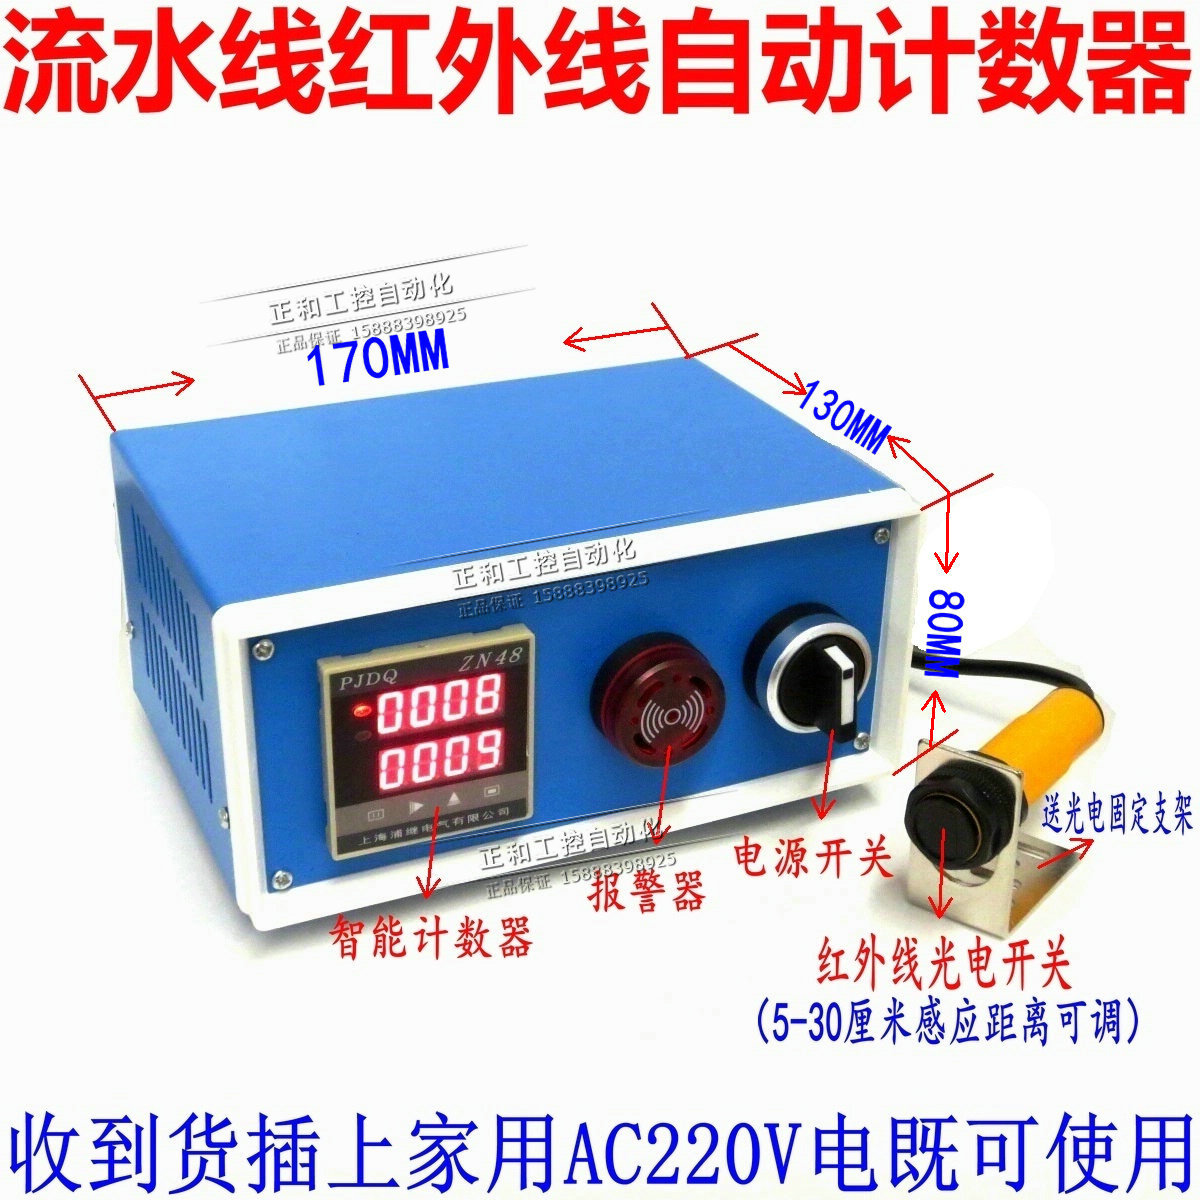 Pipeline Counter ZN48 Infrared Photoelectric Induction Electronic Digital Display Band Alarm Control цена